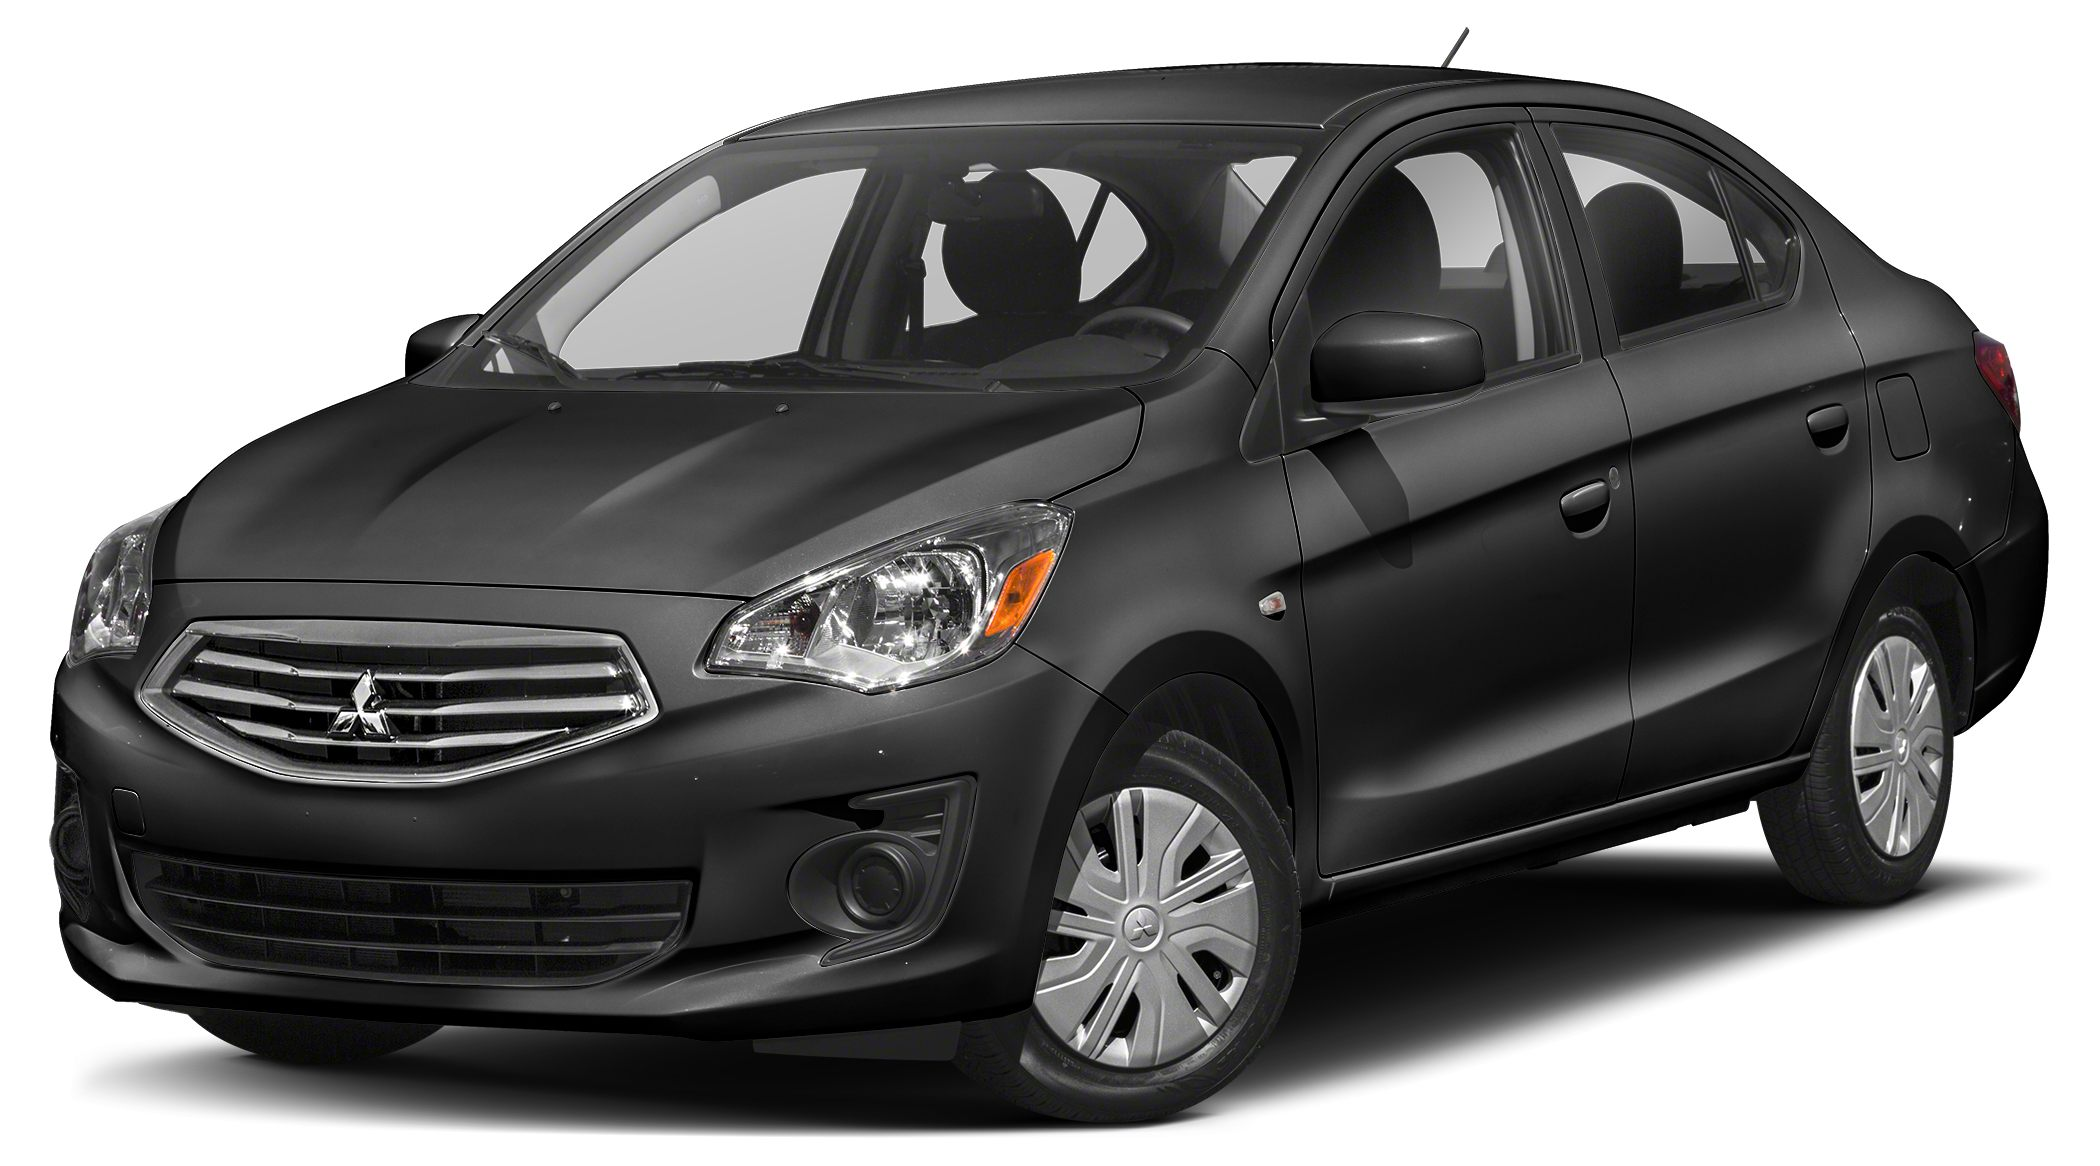 2017 Mitsubishi Mirage G4 ES WE SELL OUR VEHICLES AT WHOLESALE PRICES AND STAND BEHIND OUR CARS